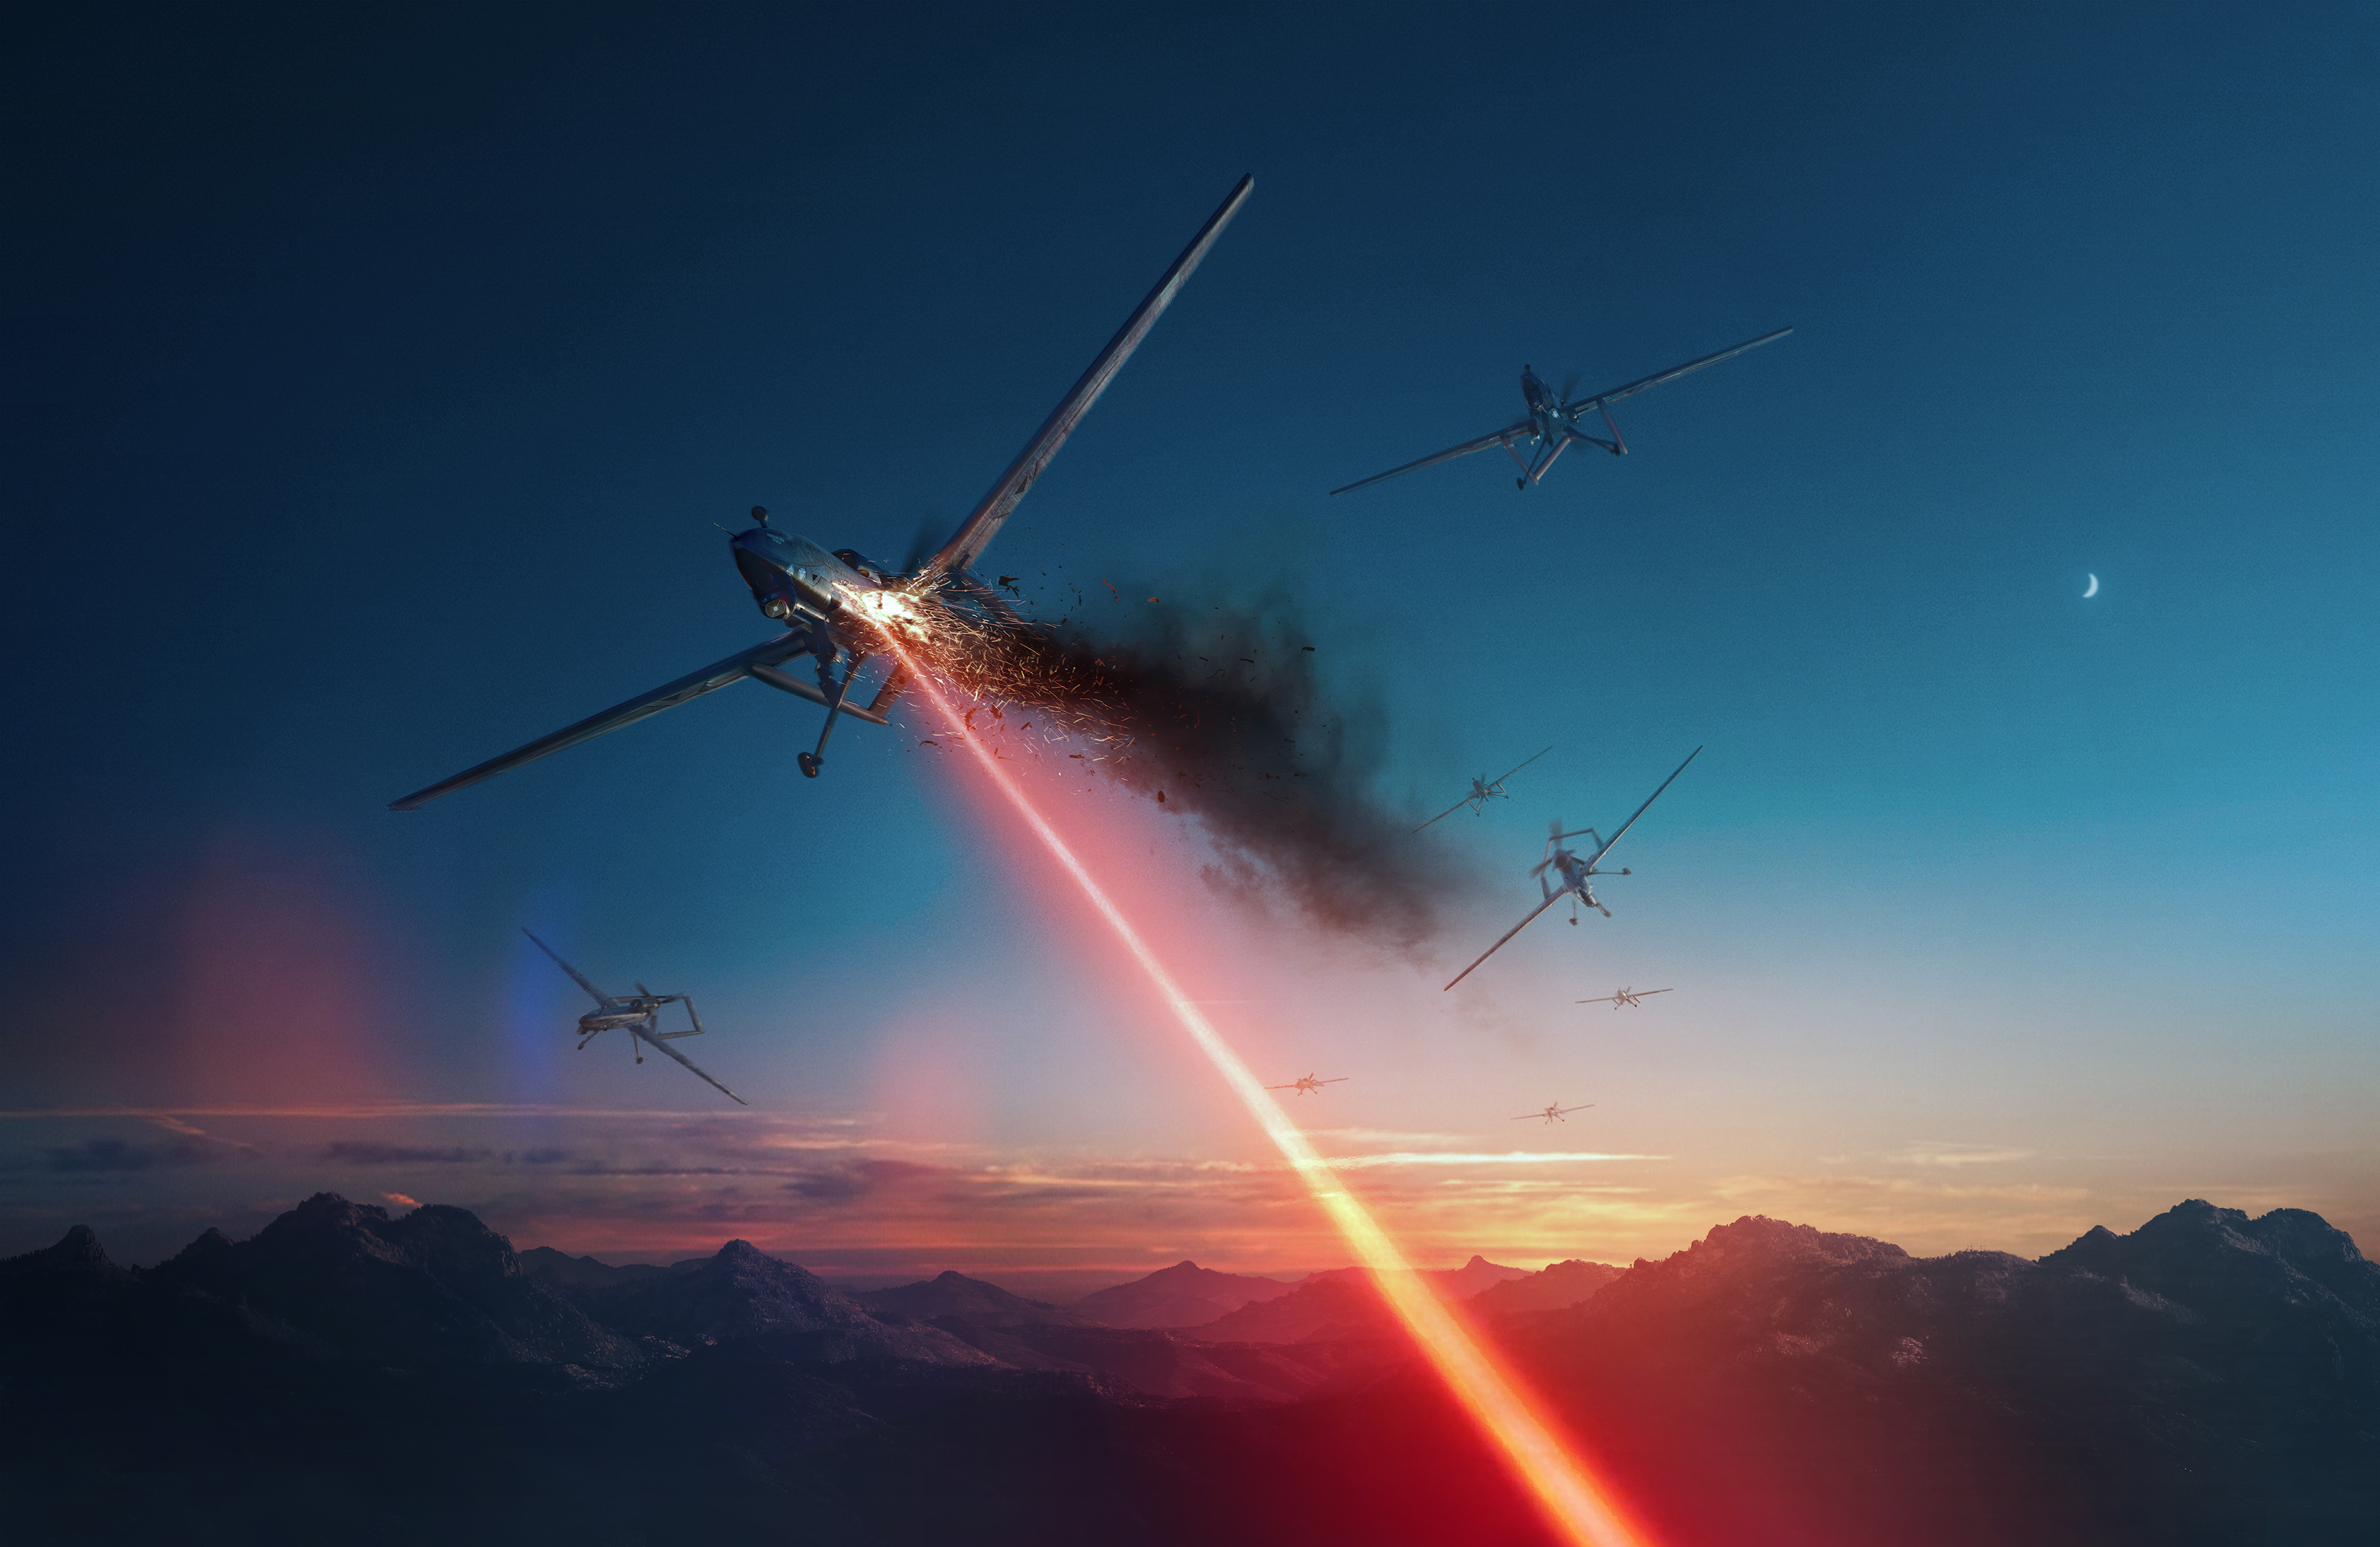 Lockheed Martin's concept art reflects its belief in the potential for directed-energy weapons against unmanned systems. (Lockheed Martin)